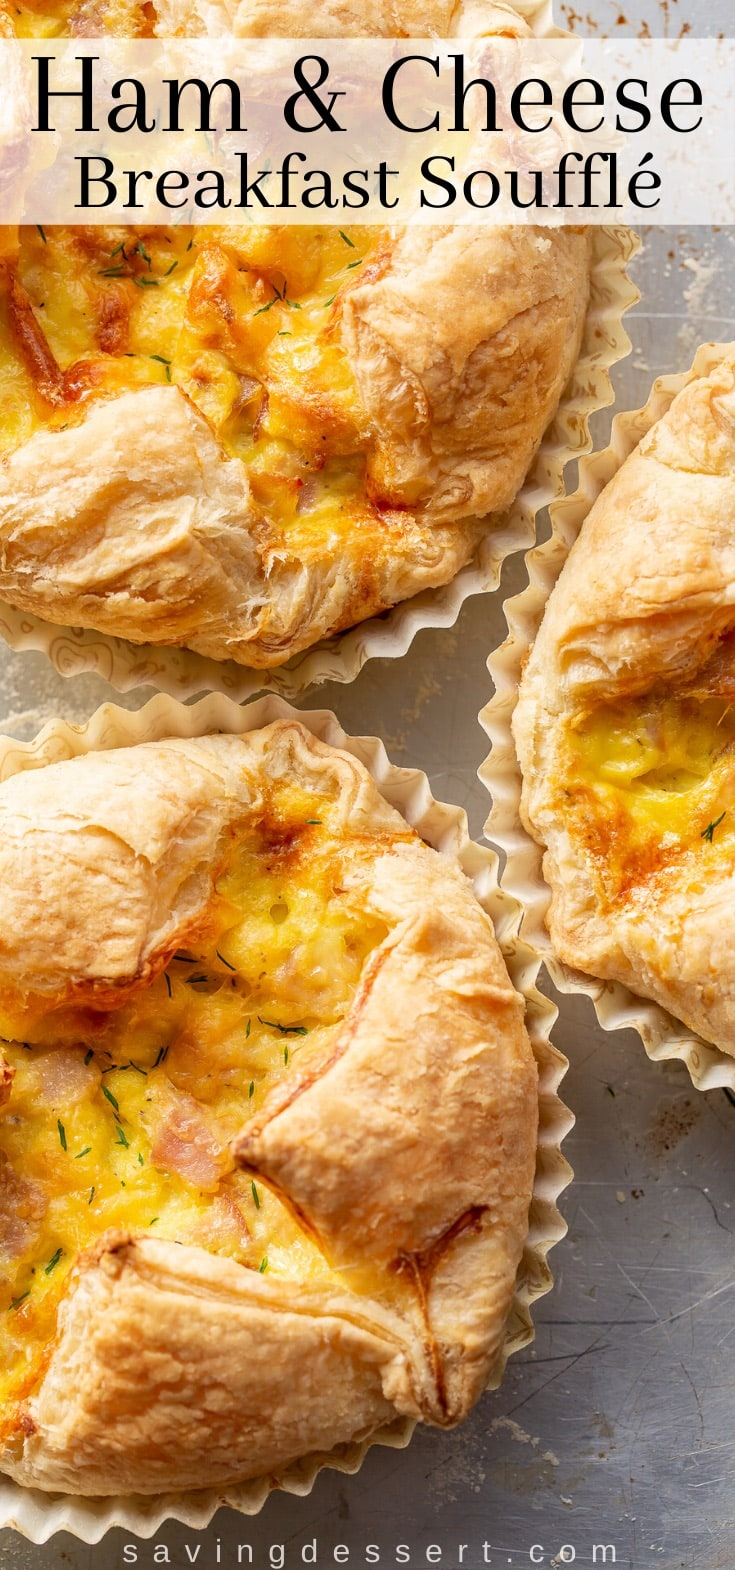 Ham & Cheese Breakfast Soufflés in paper wrappers